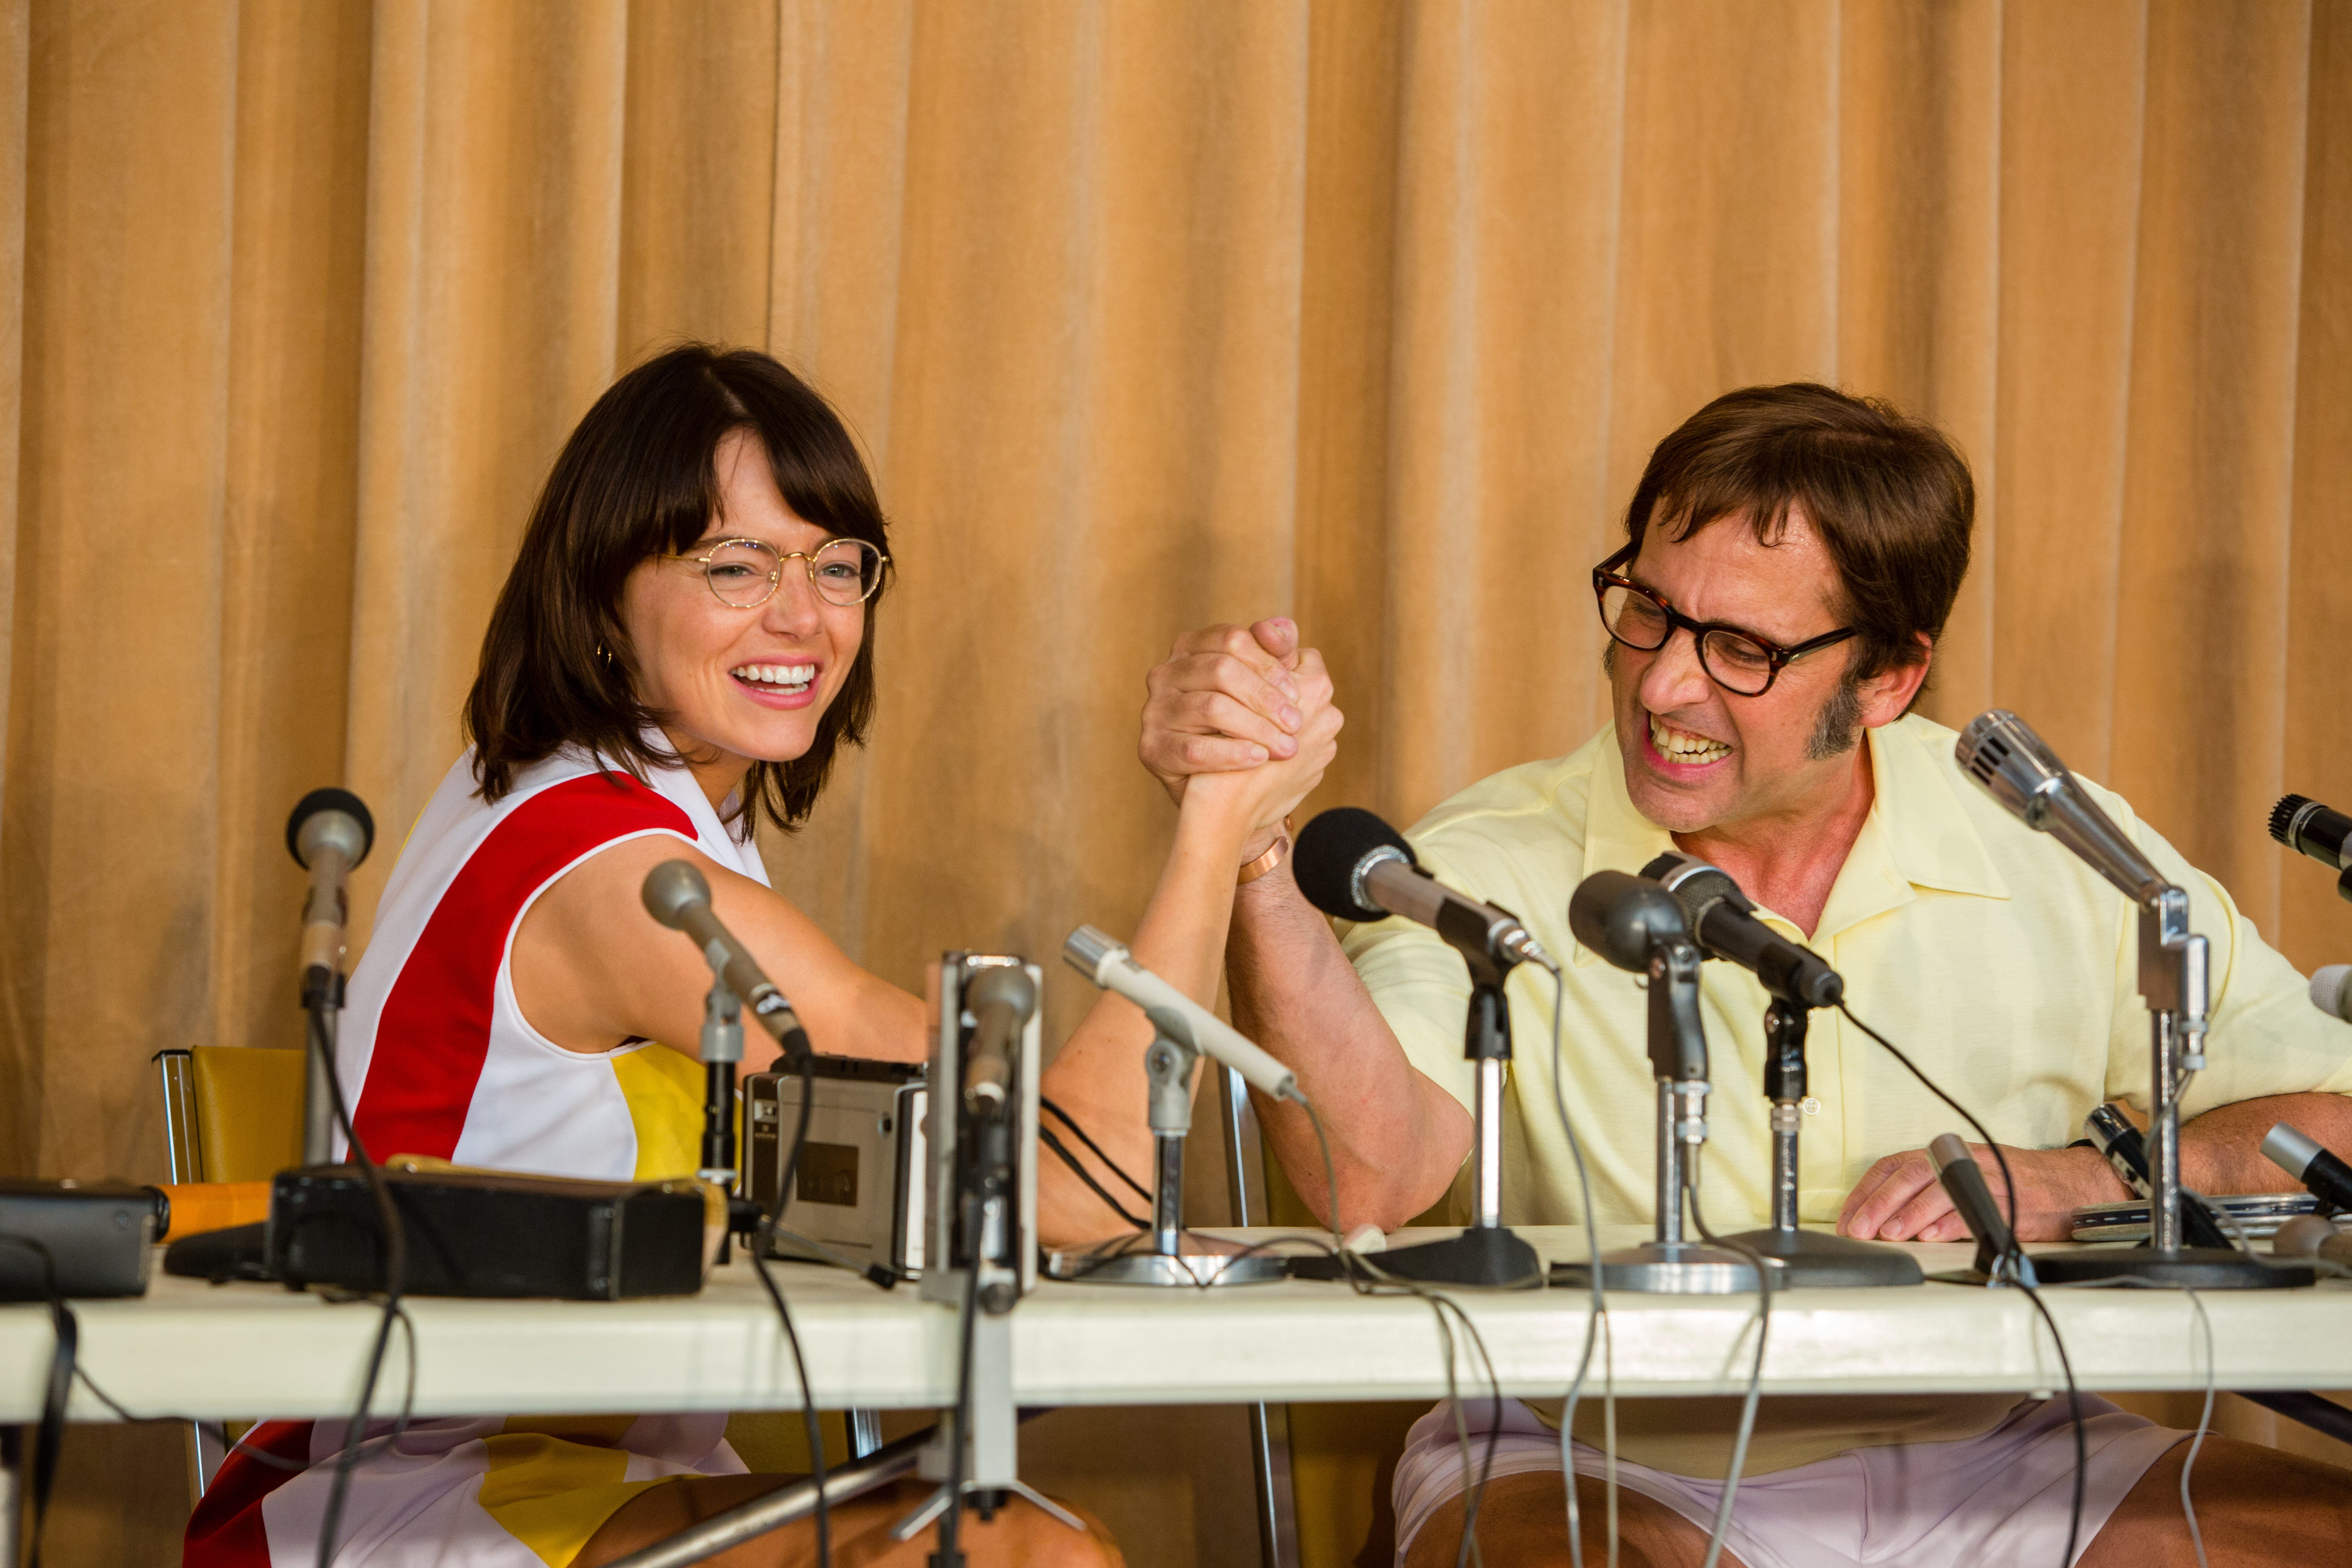 The battle of the sexes release date